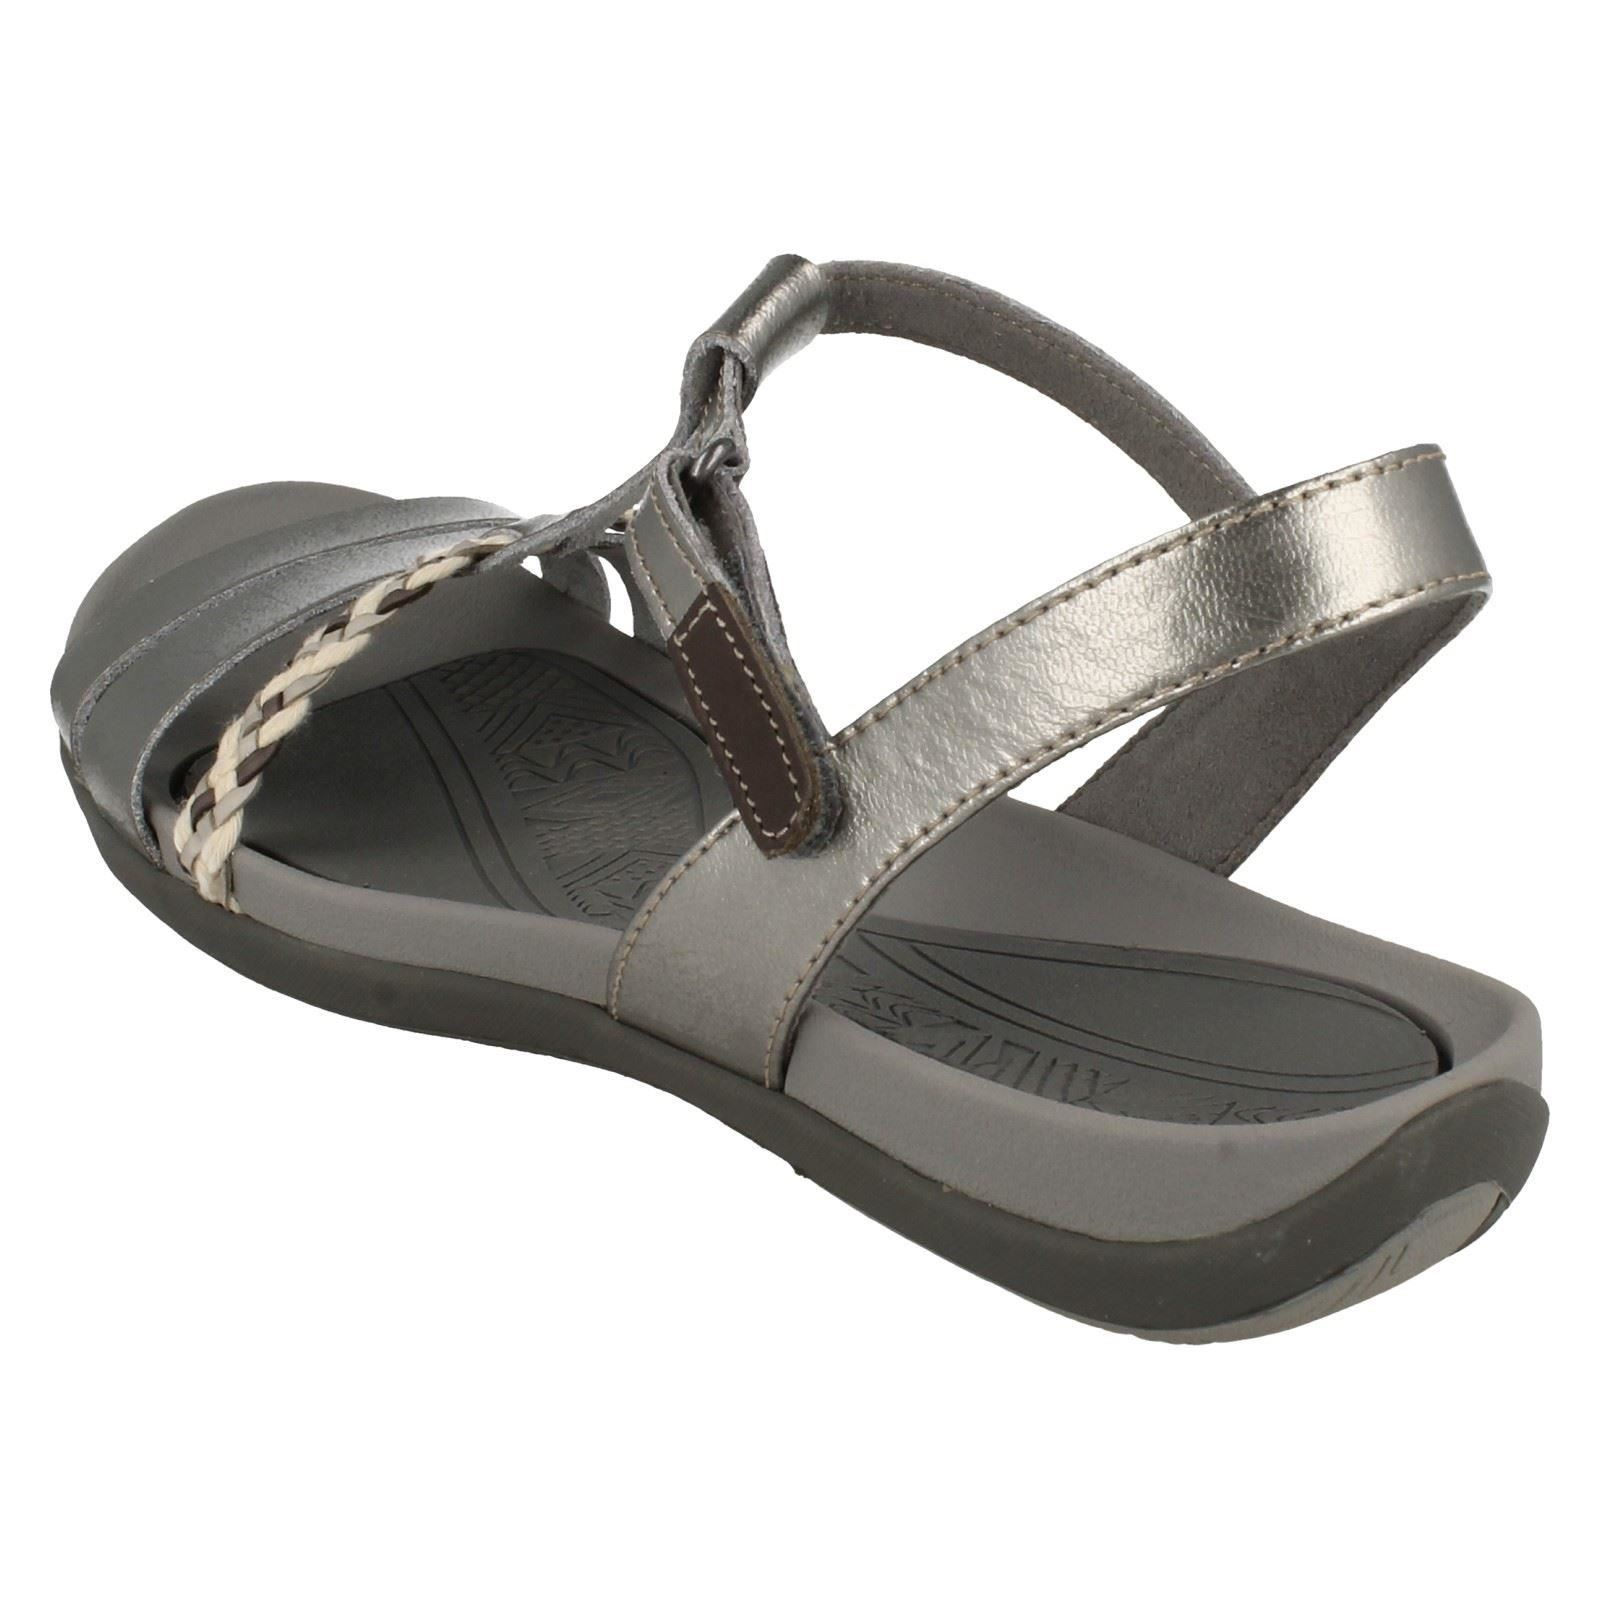 38912d5f763a Ladies-Clarks-Casual-Summer-Sandals-Tealite-Grace thumbnail 42